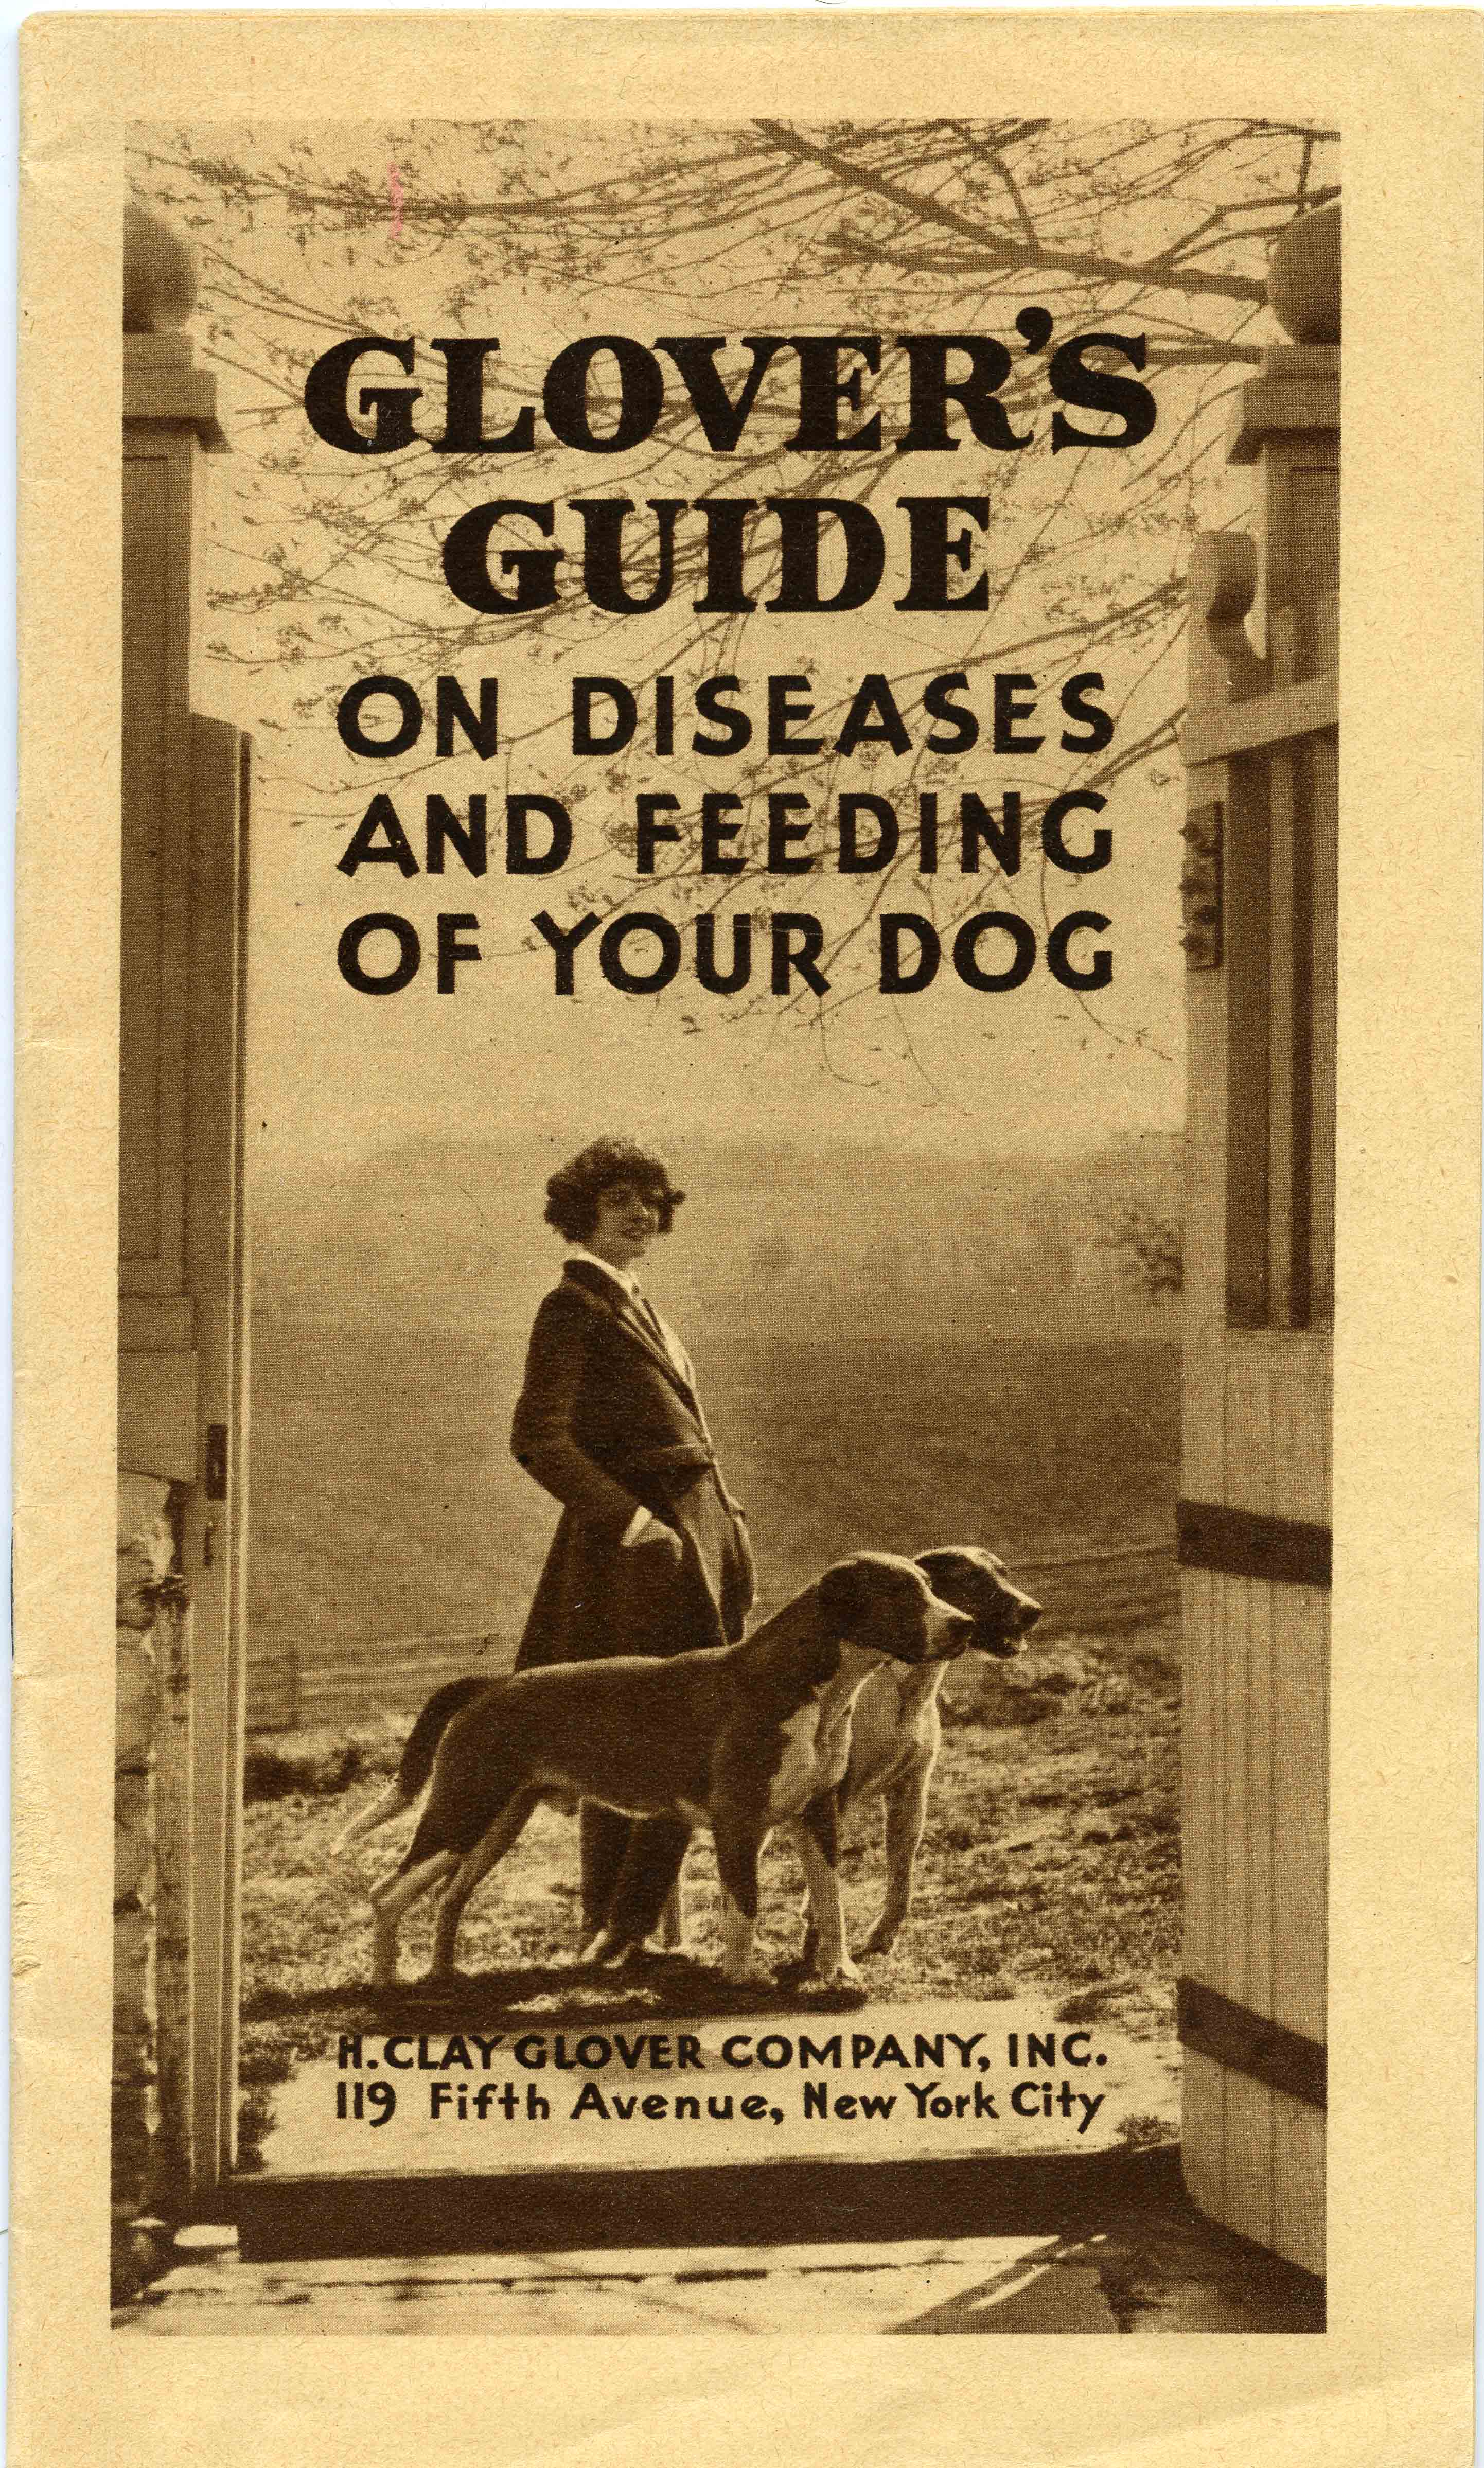 Glover's Guide on Diseases and Feeding of Your Dog